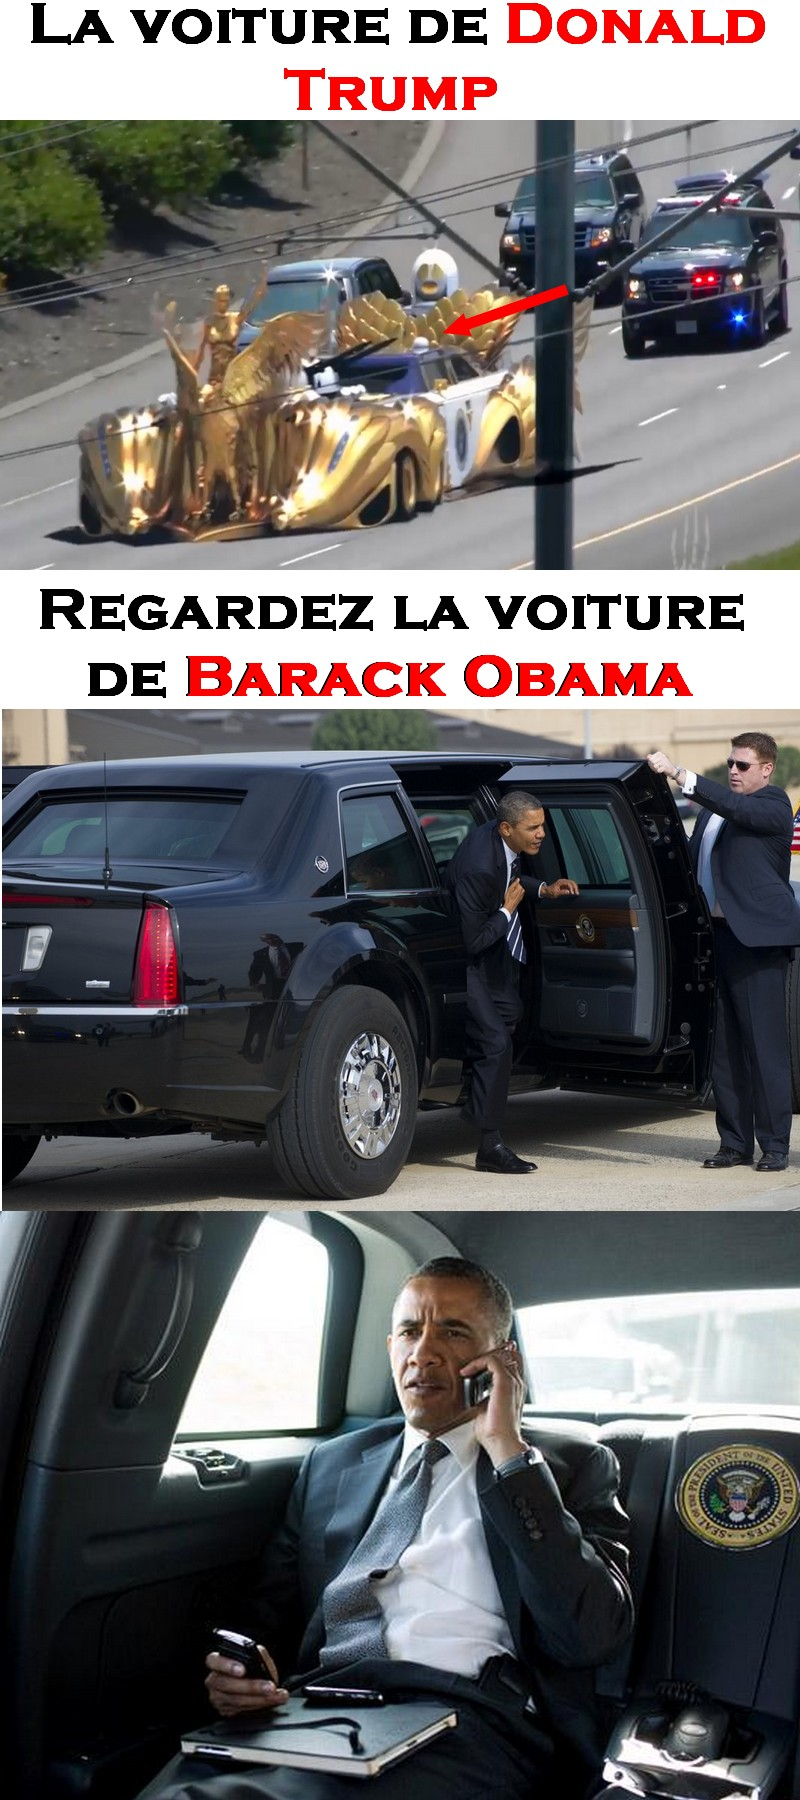 la voiture de barack obama vs trump image lien. Black Bedroom Furniture Sets. Home Design Ideas